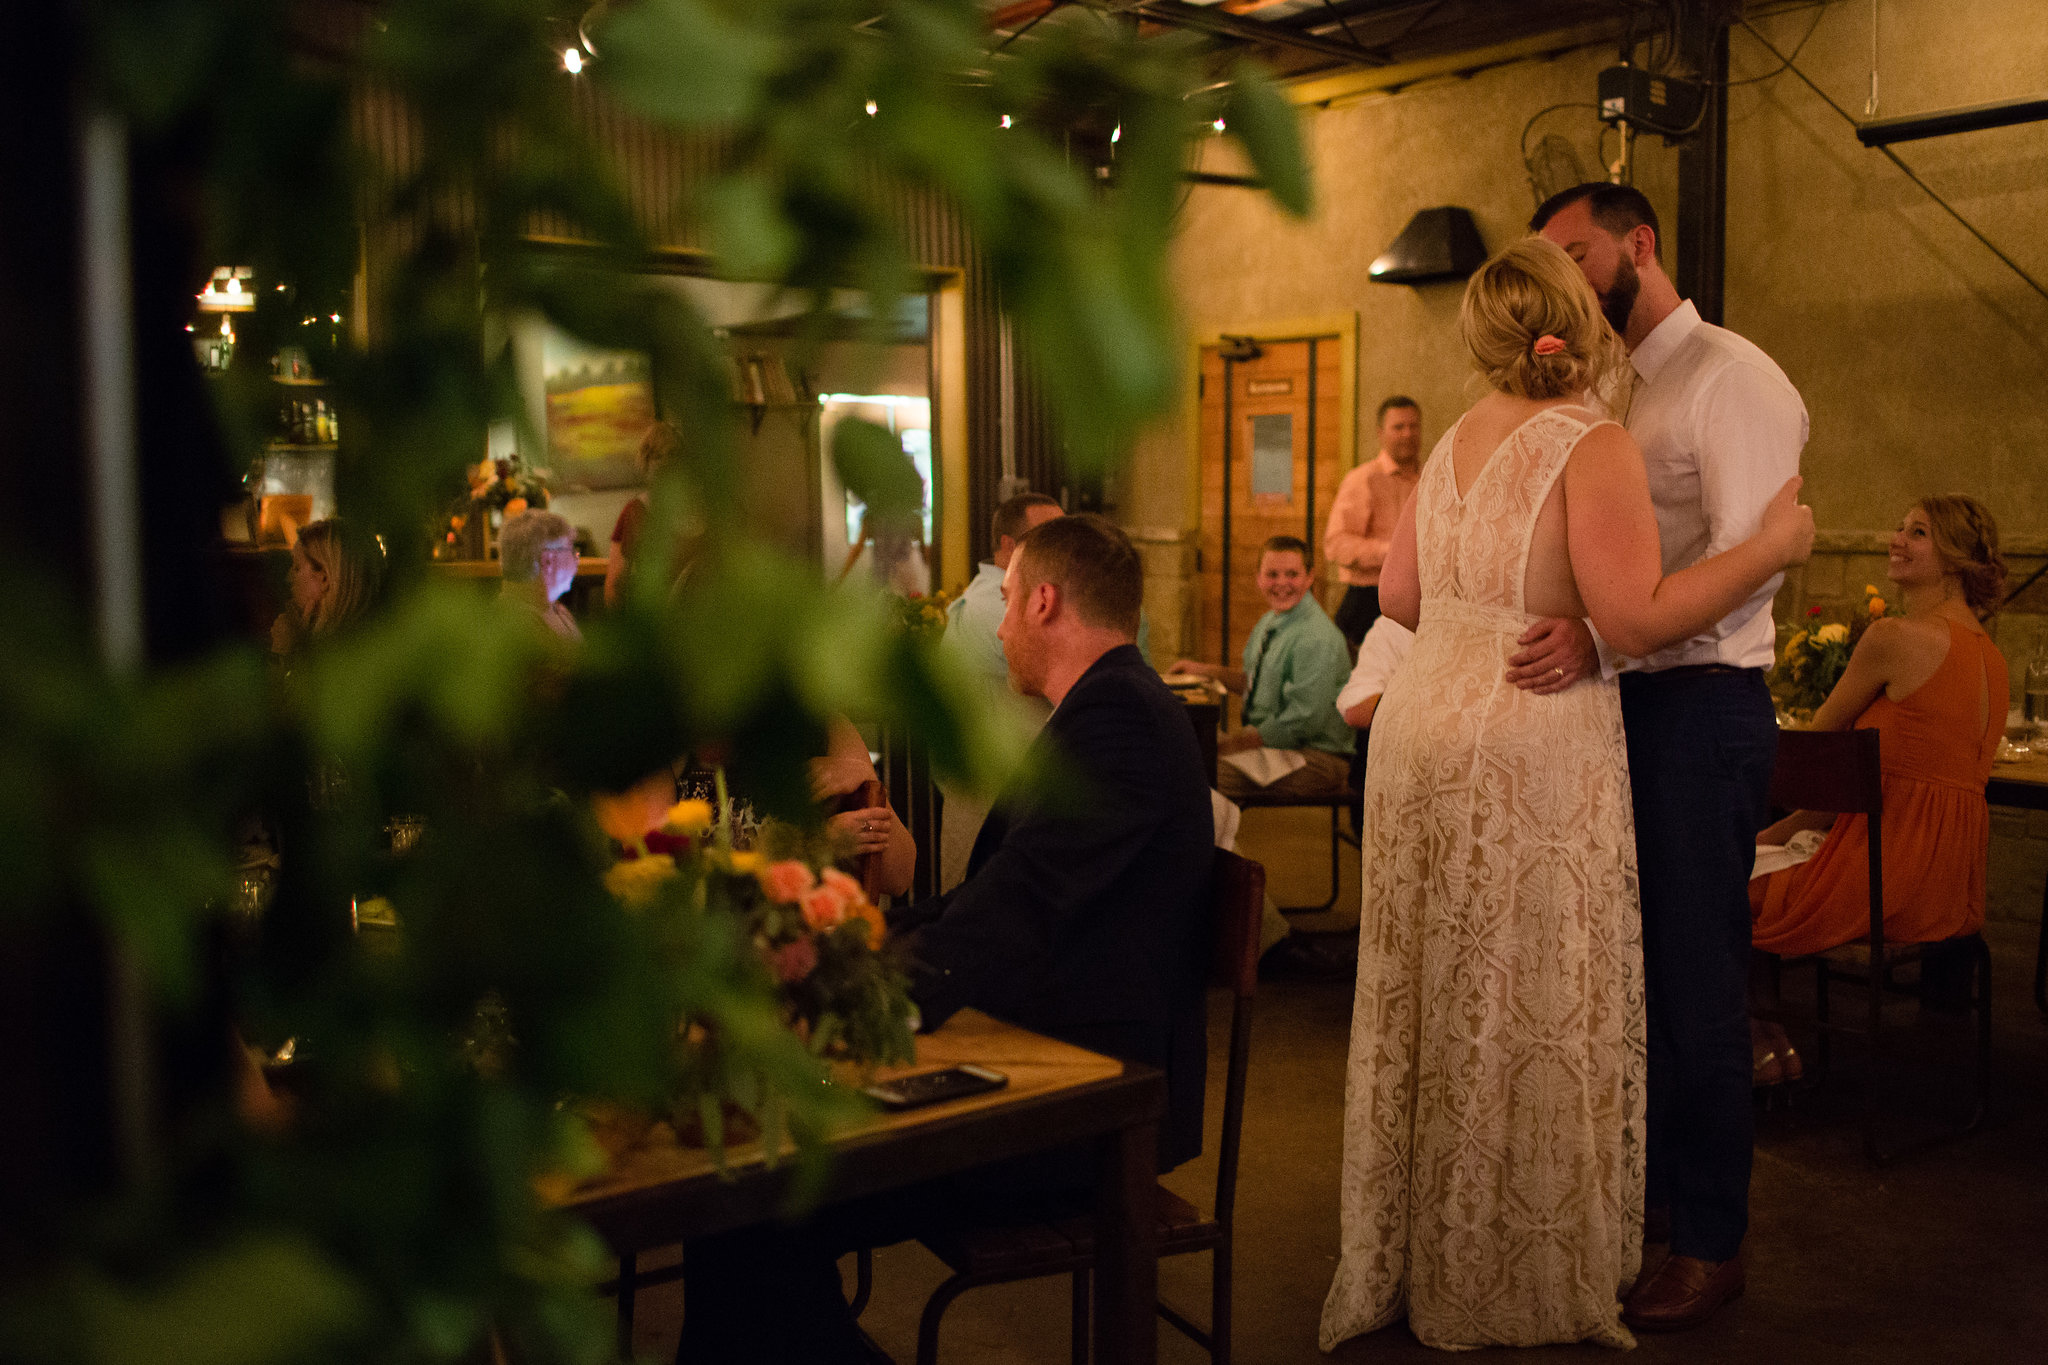 Paige-Newton-Intimate-Wedding-Photographer-Contigo-Wedding-Austin-Texas0125.jpg